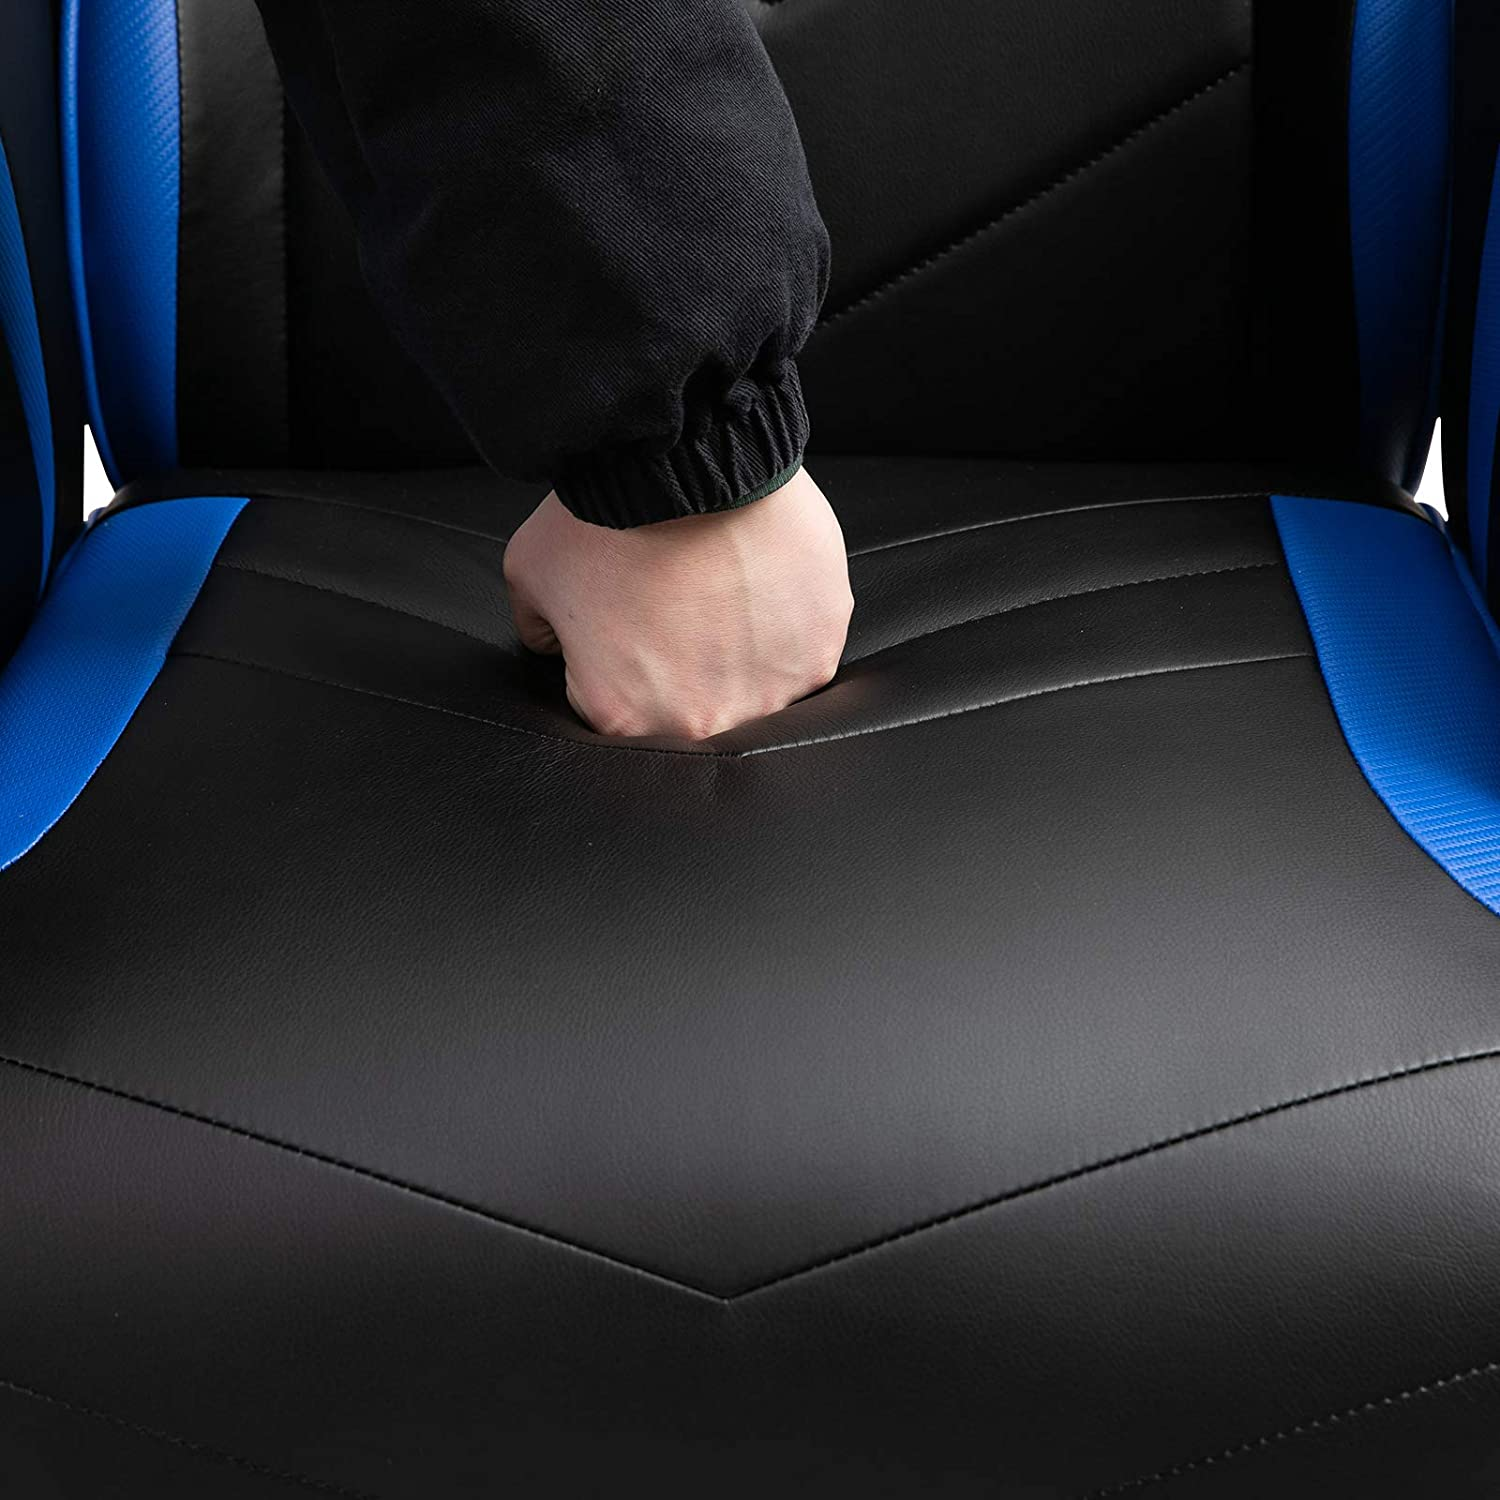 Vinsetto Home Comfortable Office Video Game Sofa Swivel Chair with a Strong Ergonomic Design /& Quality Material Blue